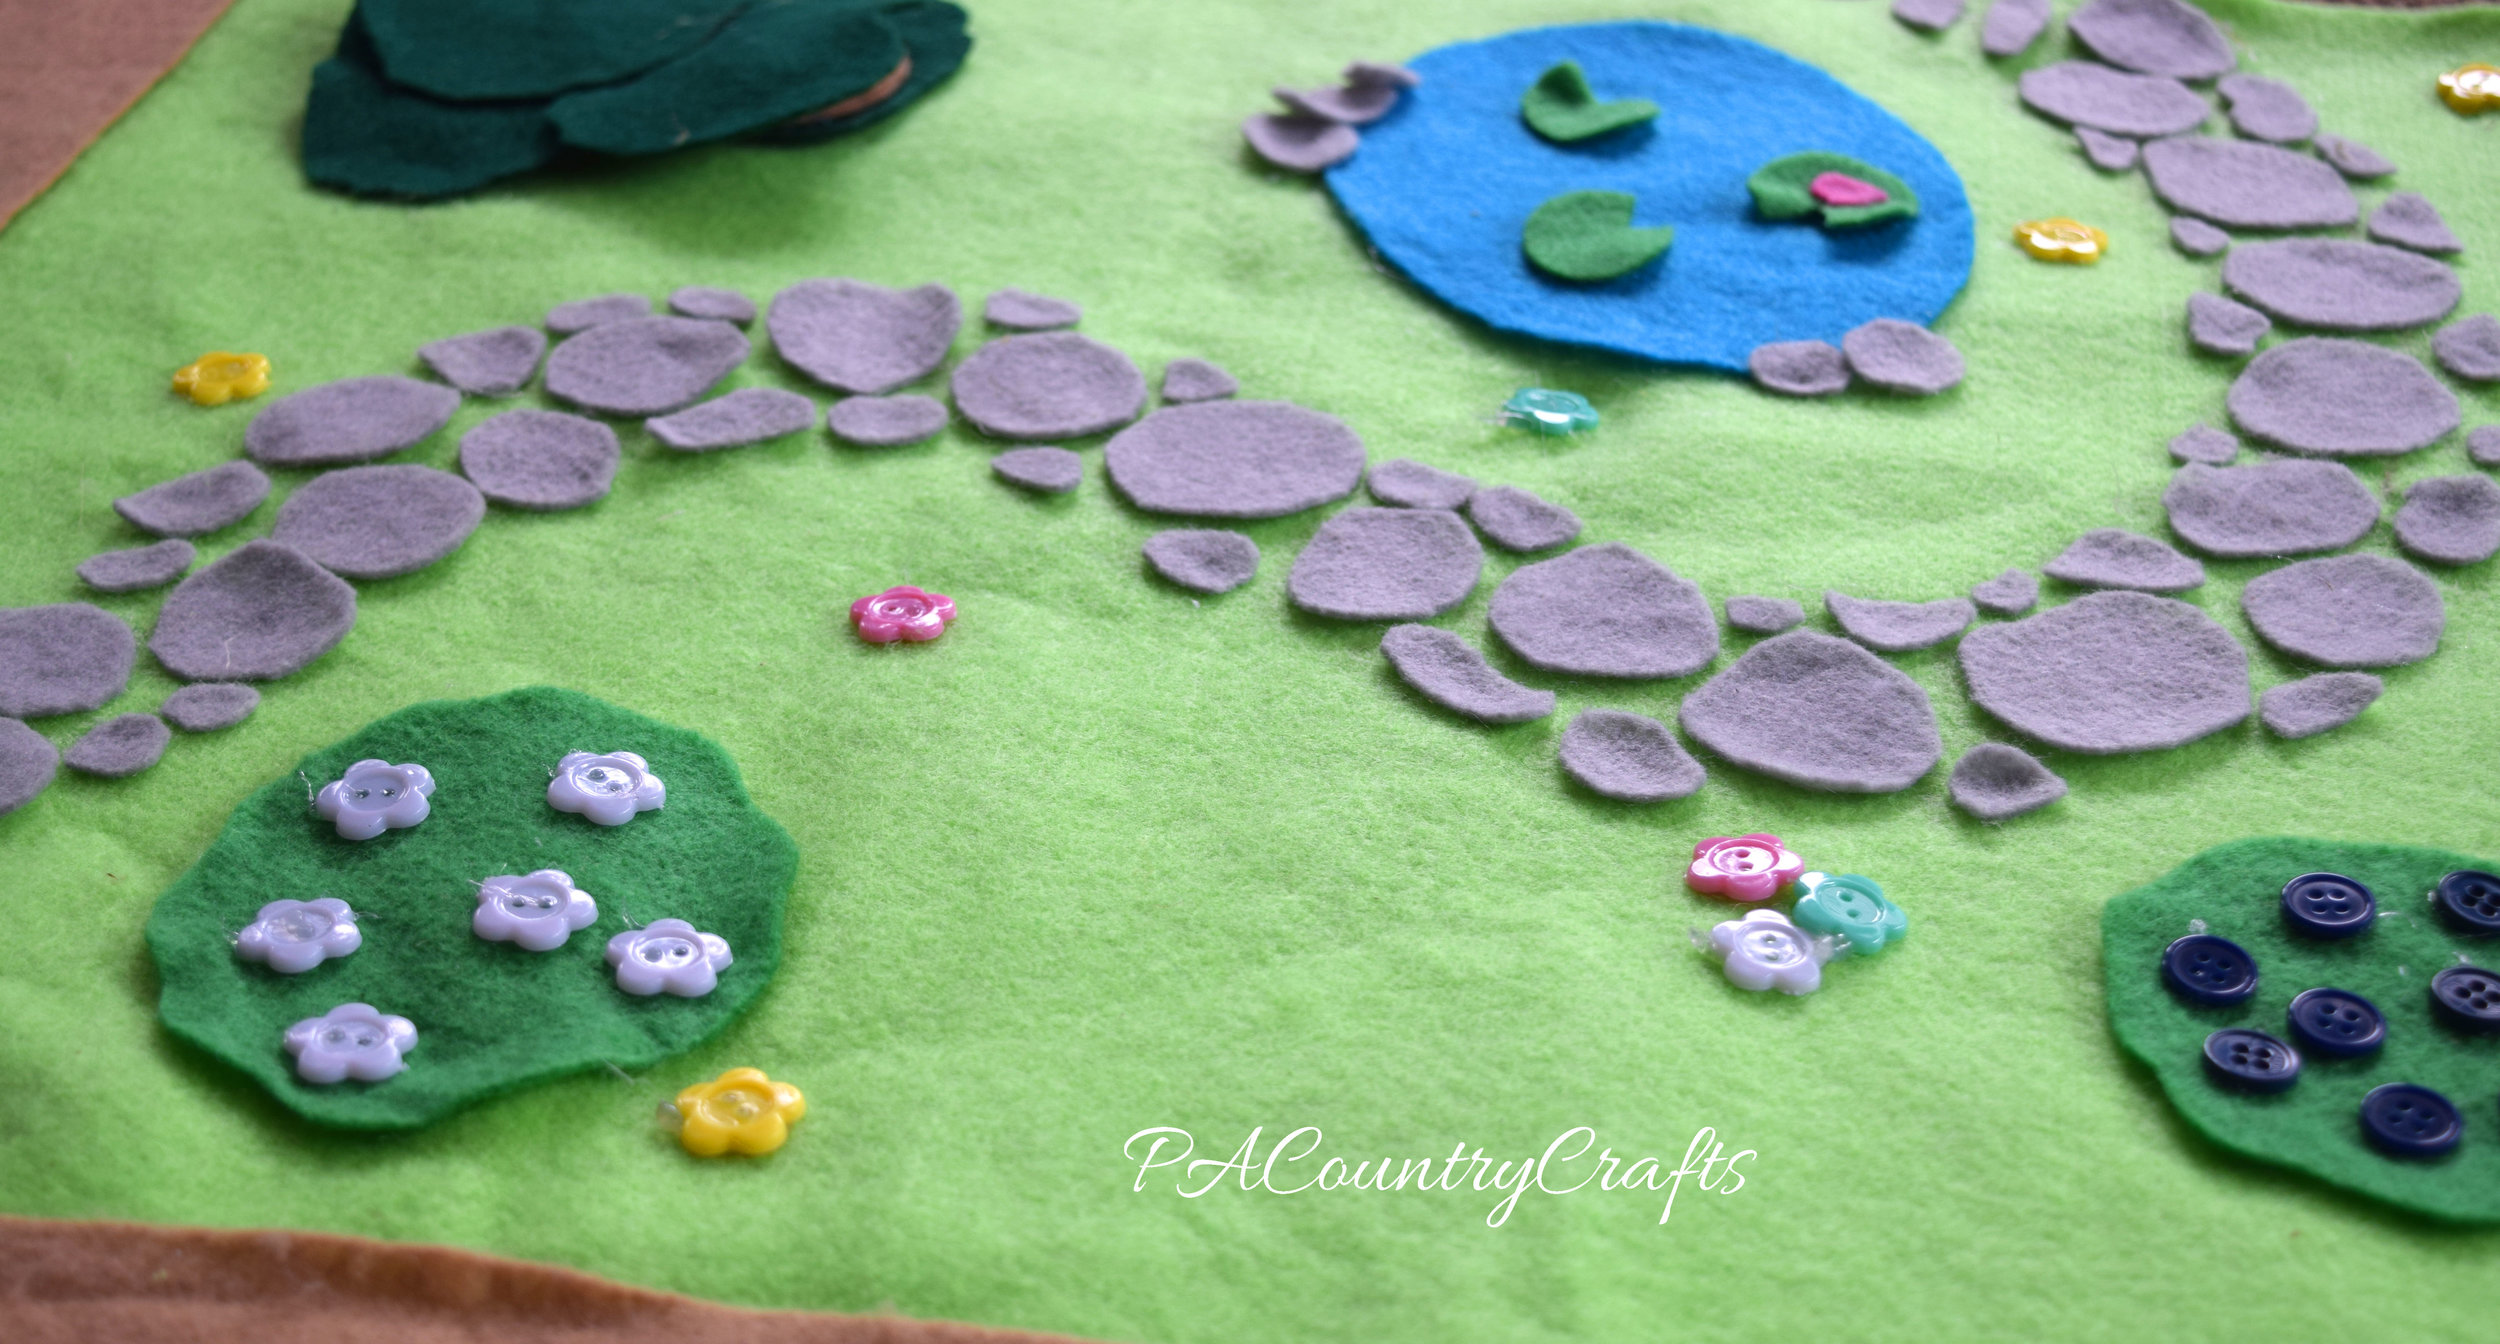 Make a felt cobblestone path by hot gluing gray circles